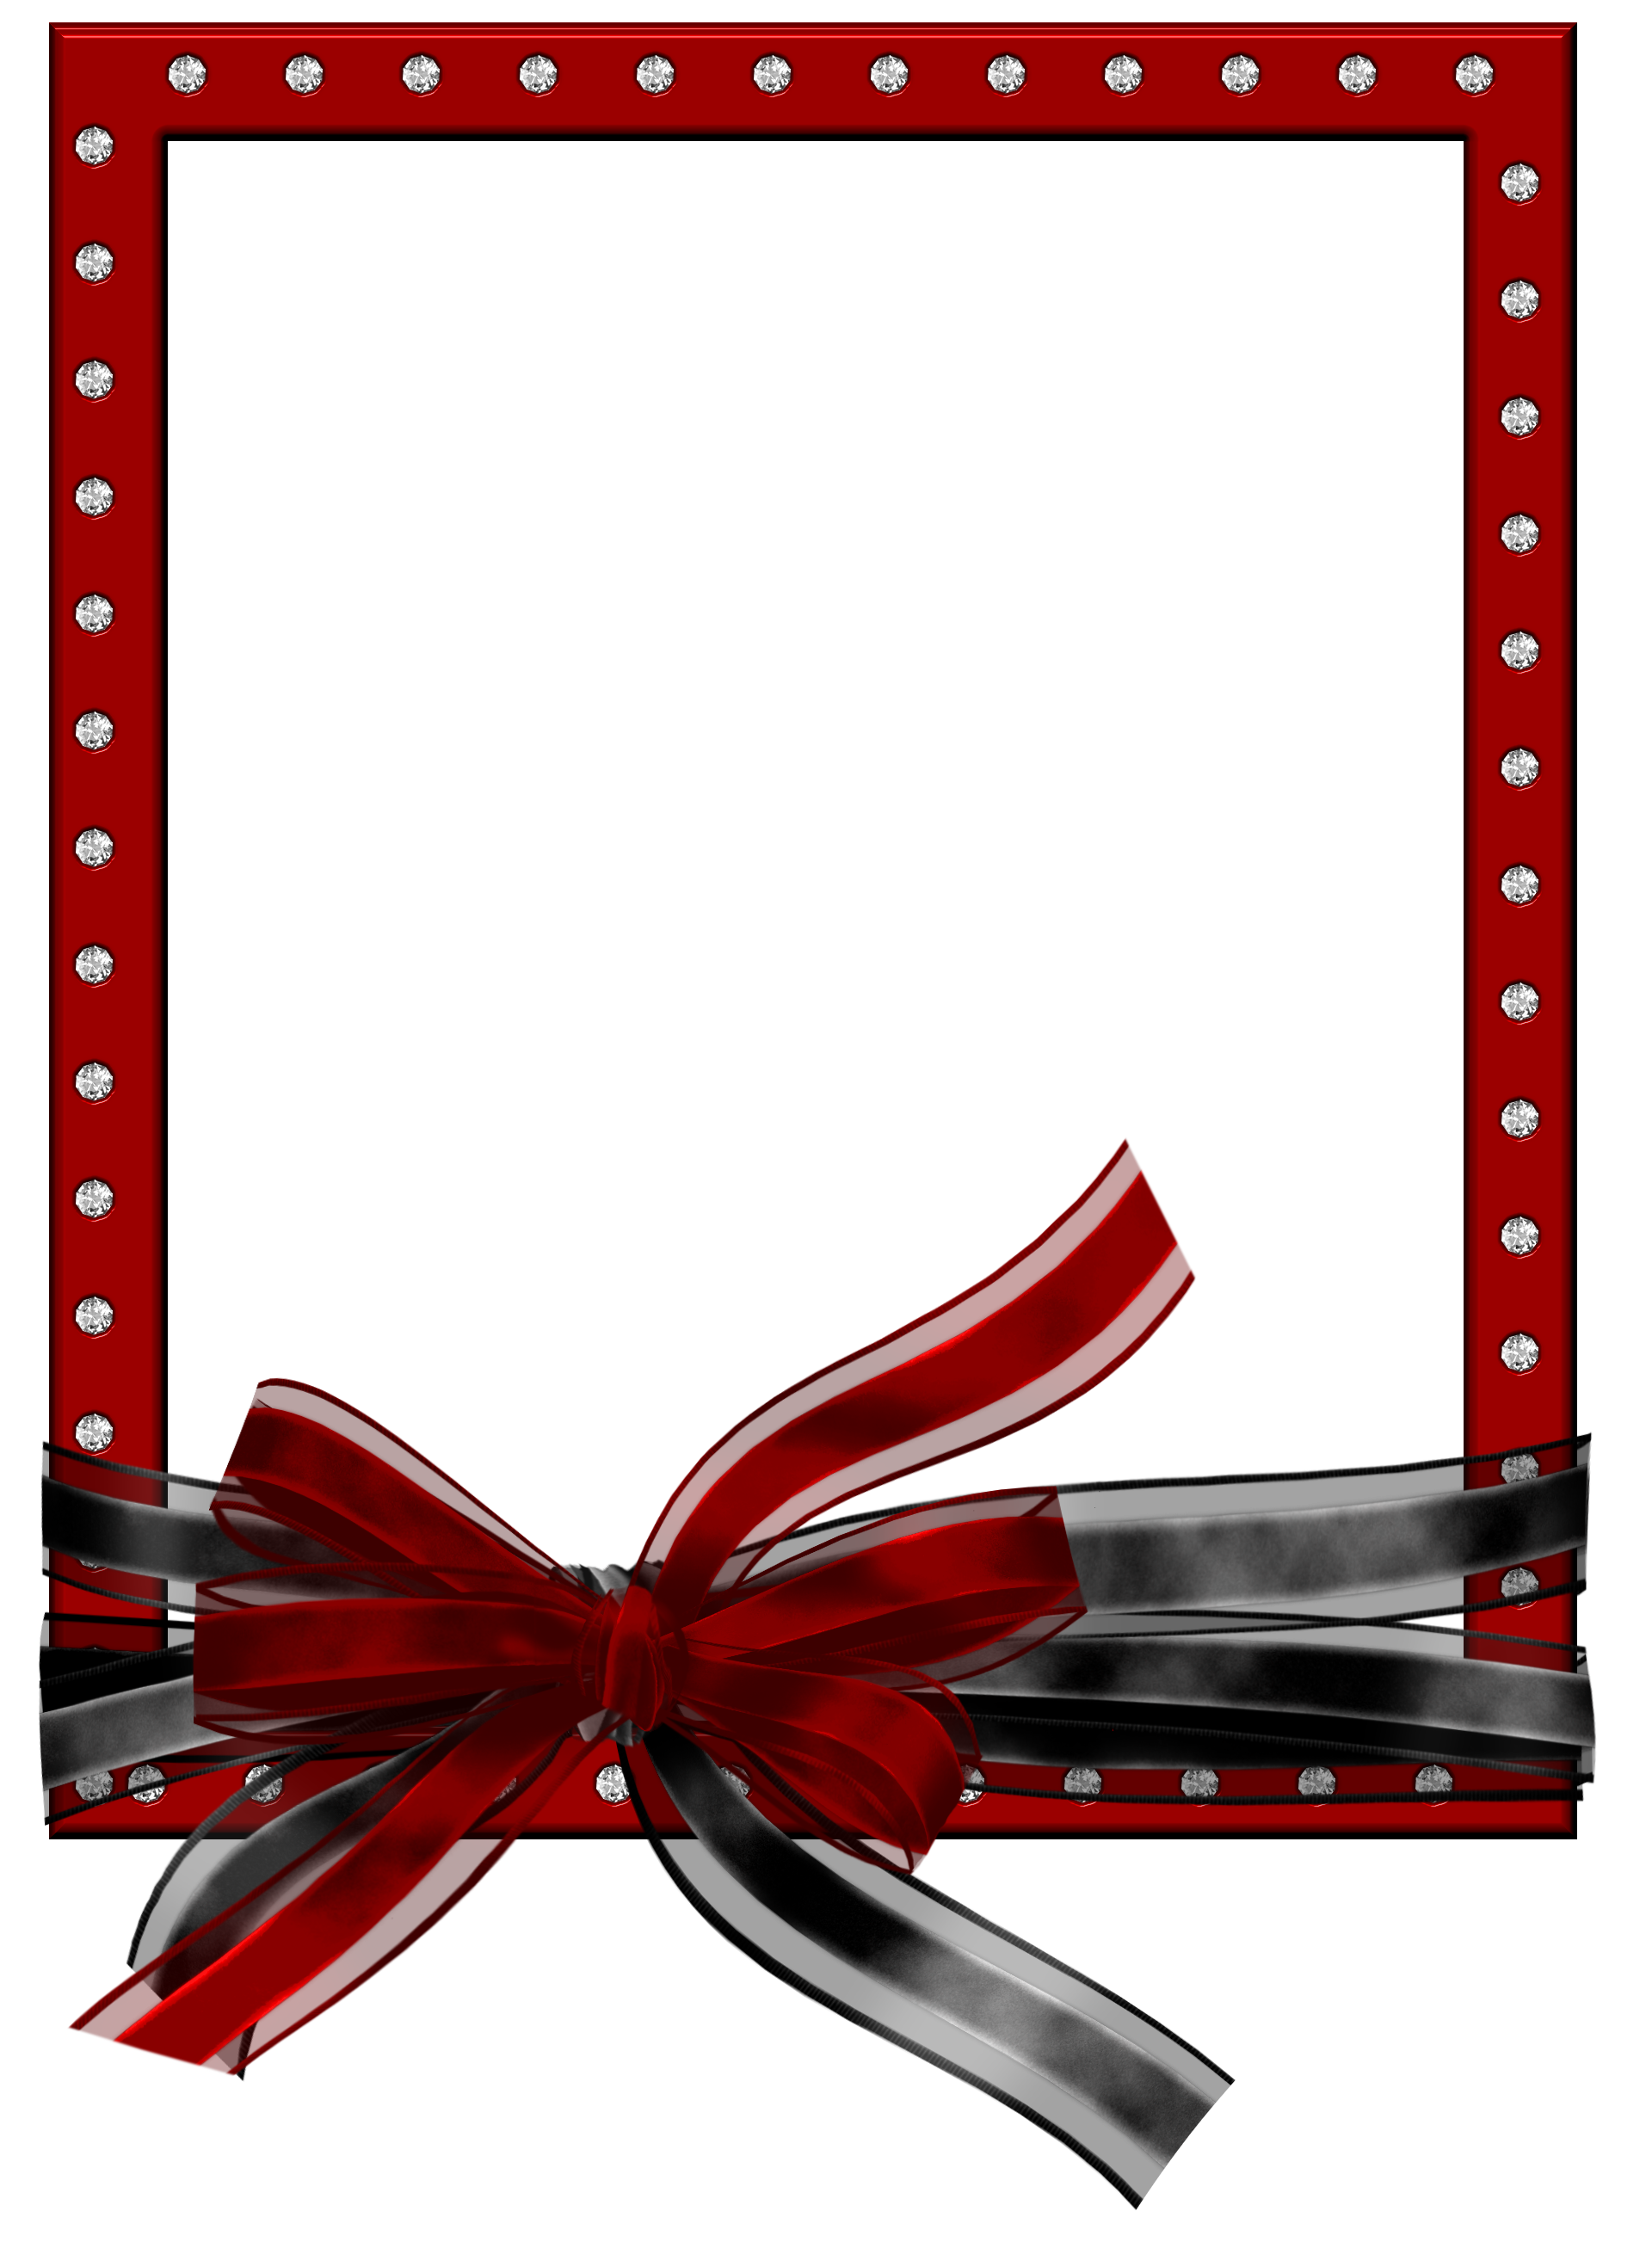 red png photo frame with black and red bow